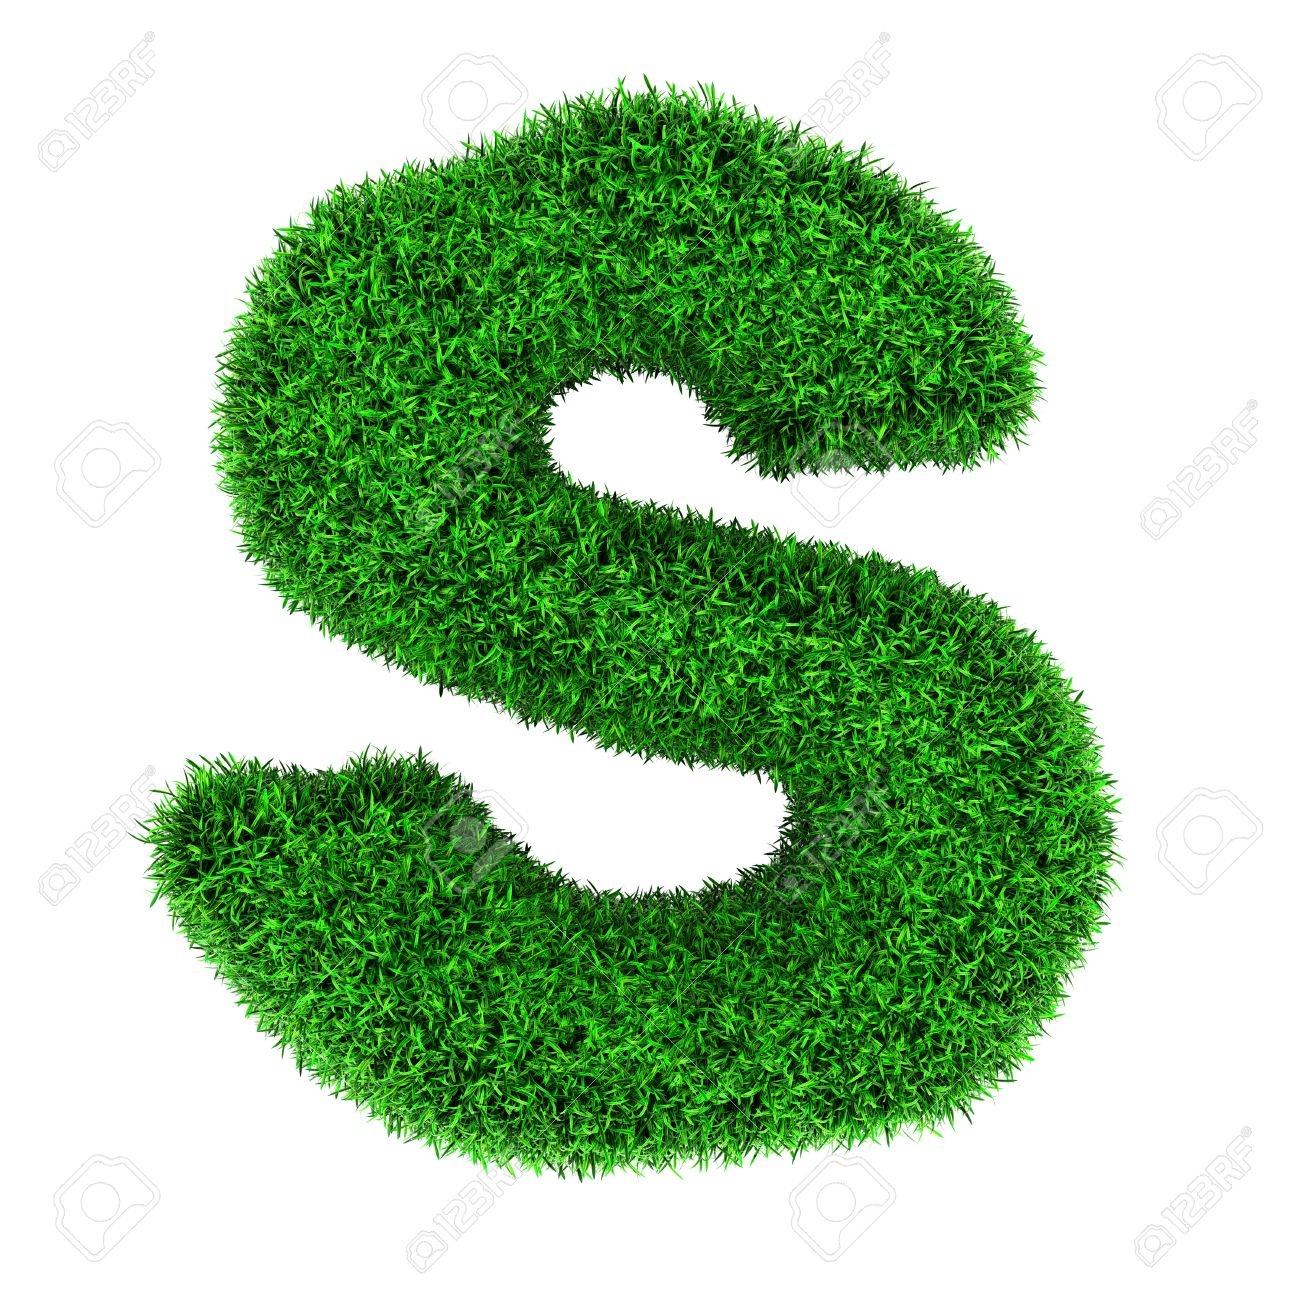 Delicieux Letter S, Made Of Grass Isolated On White Background. Stock Photo   12346491